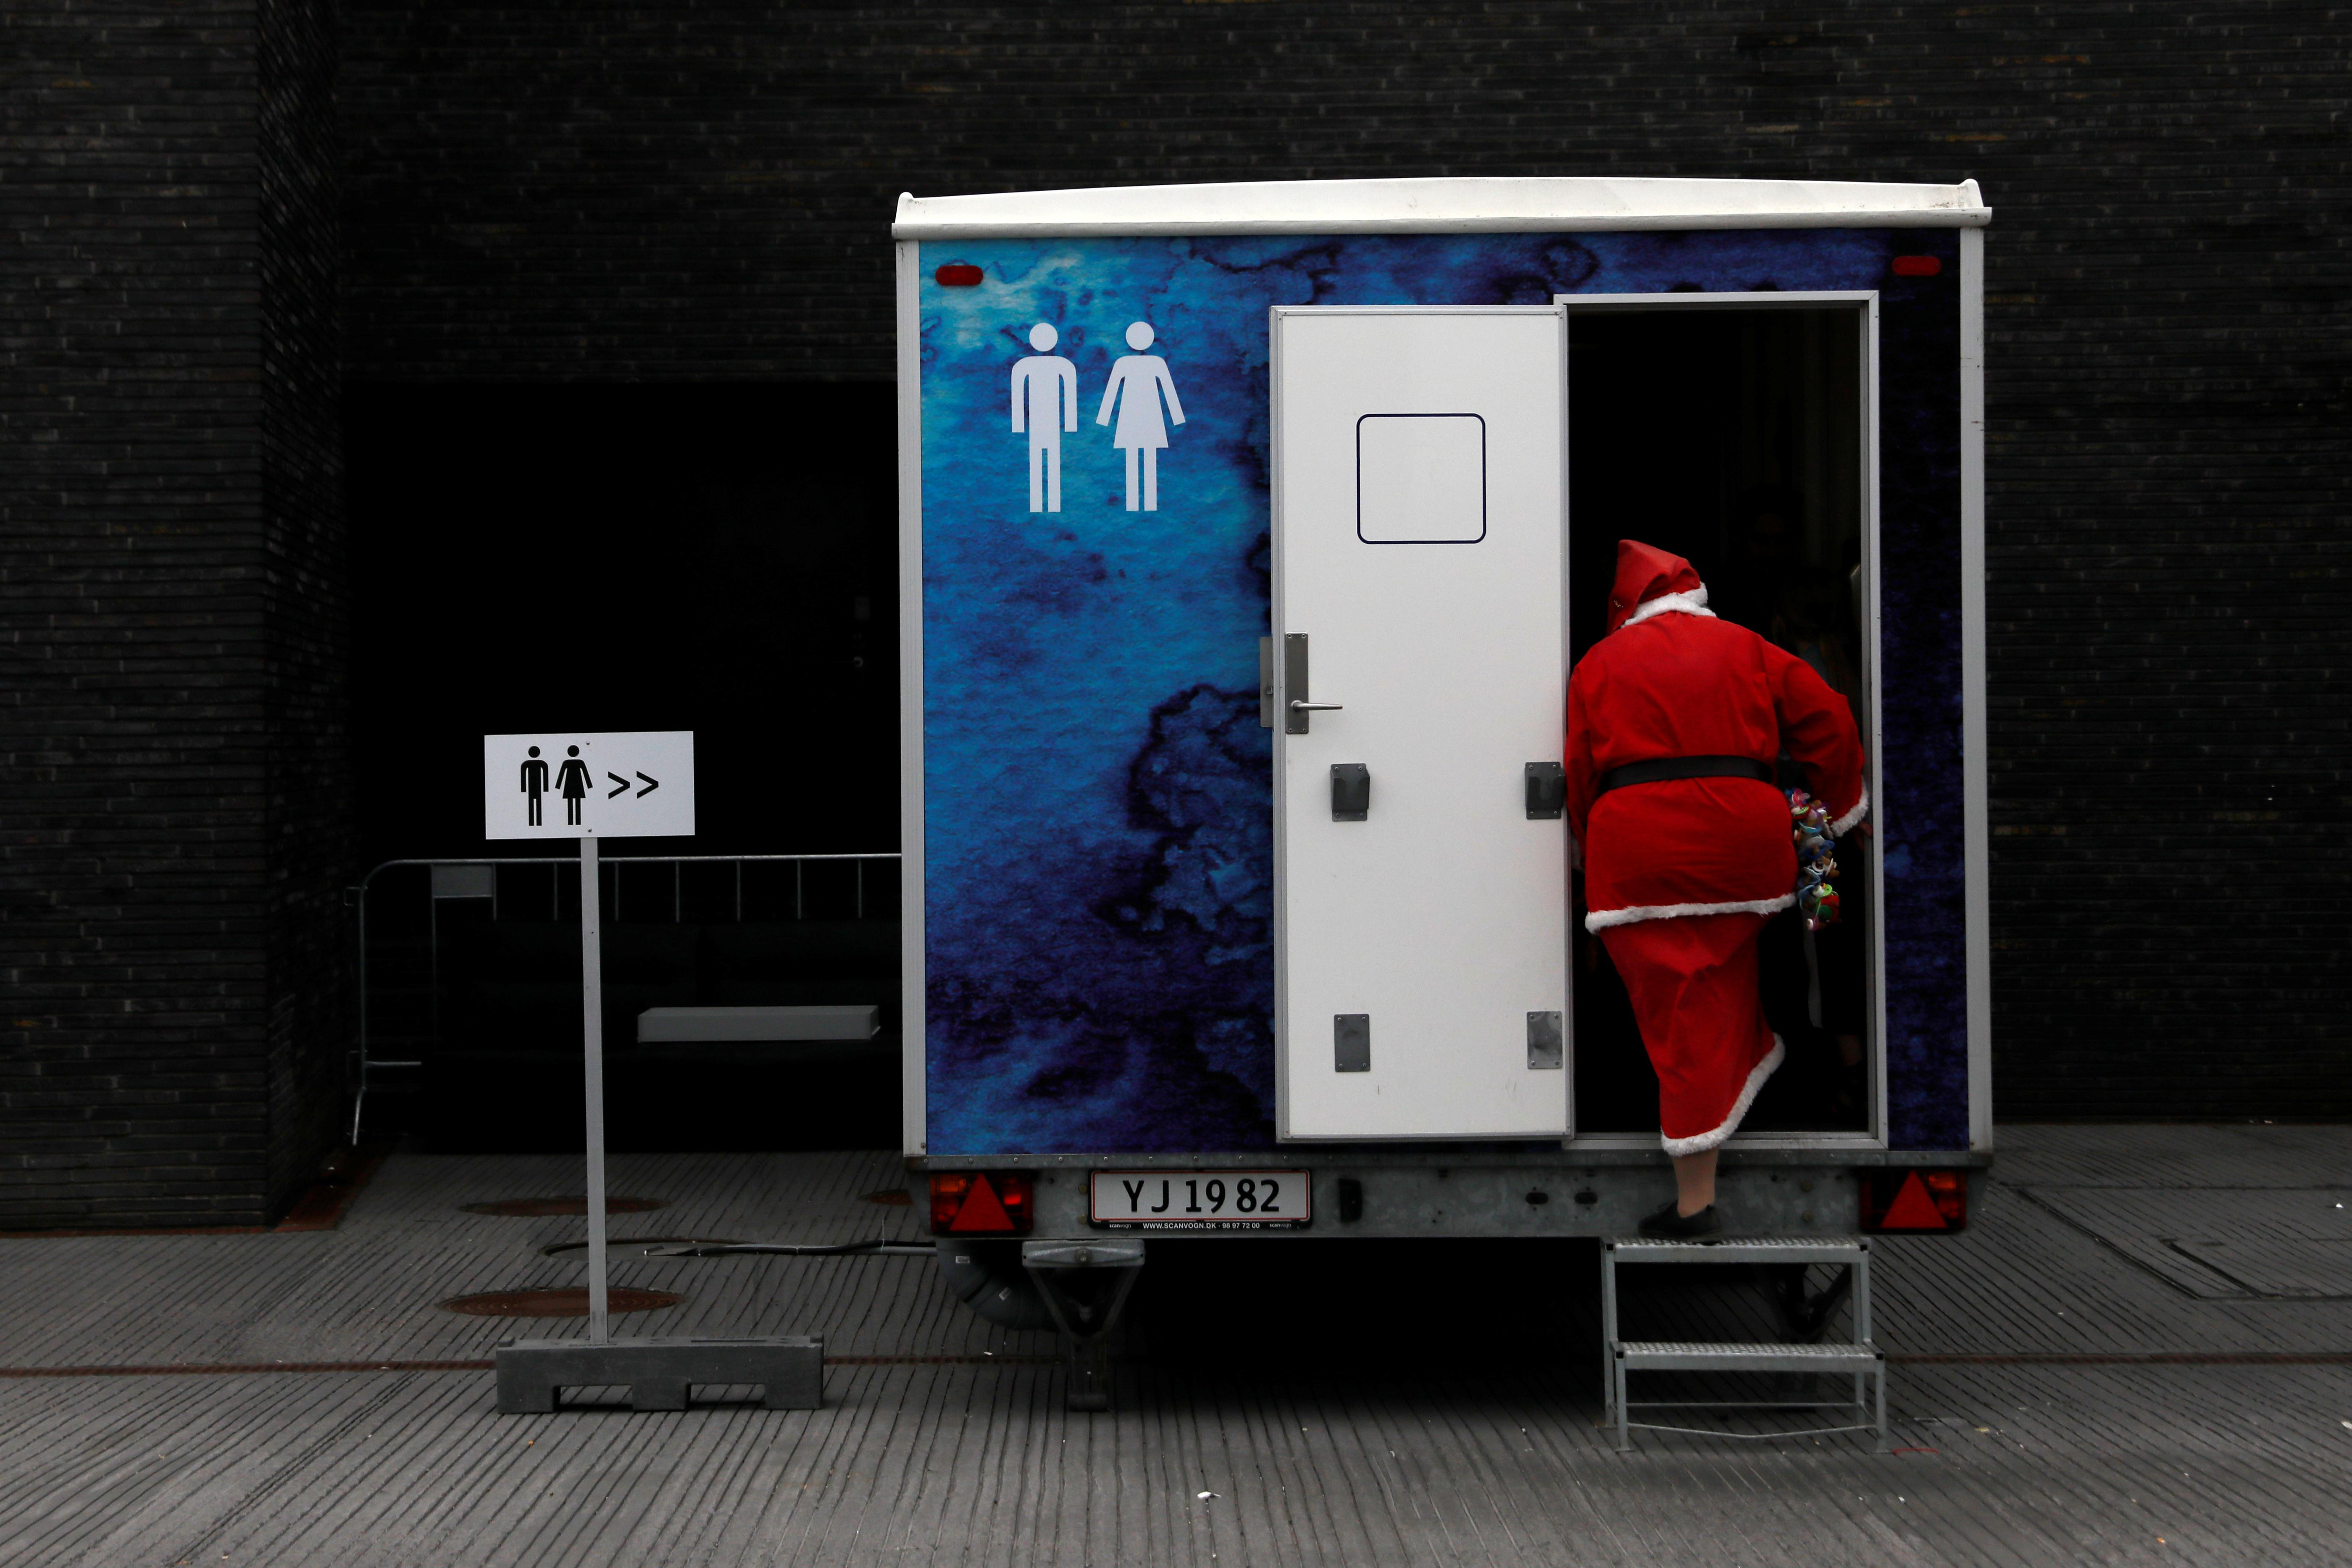 A person dressed as Santa Claus uses a restroom during the World Santa Claus Congress, an annual event held every summer in Copenhagen, Denmark, July 23, 2018.  Andrew Kelly